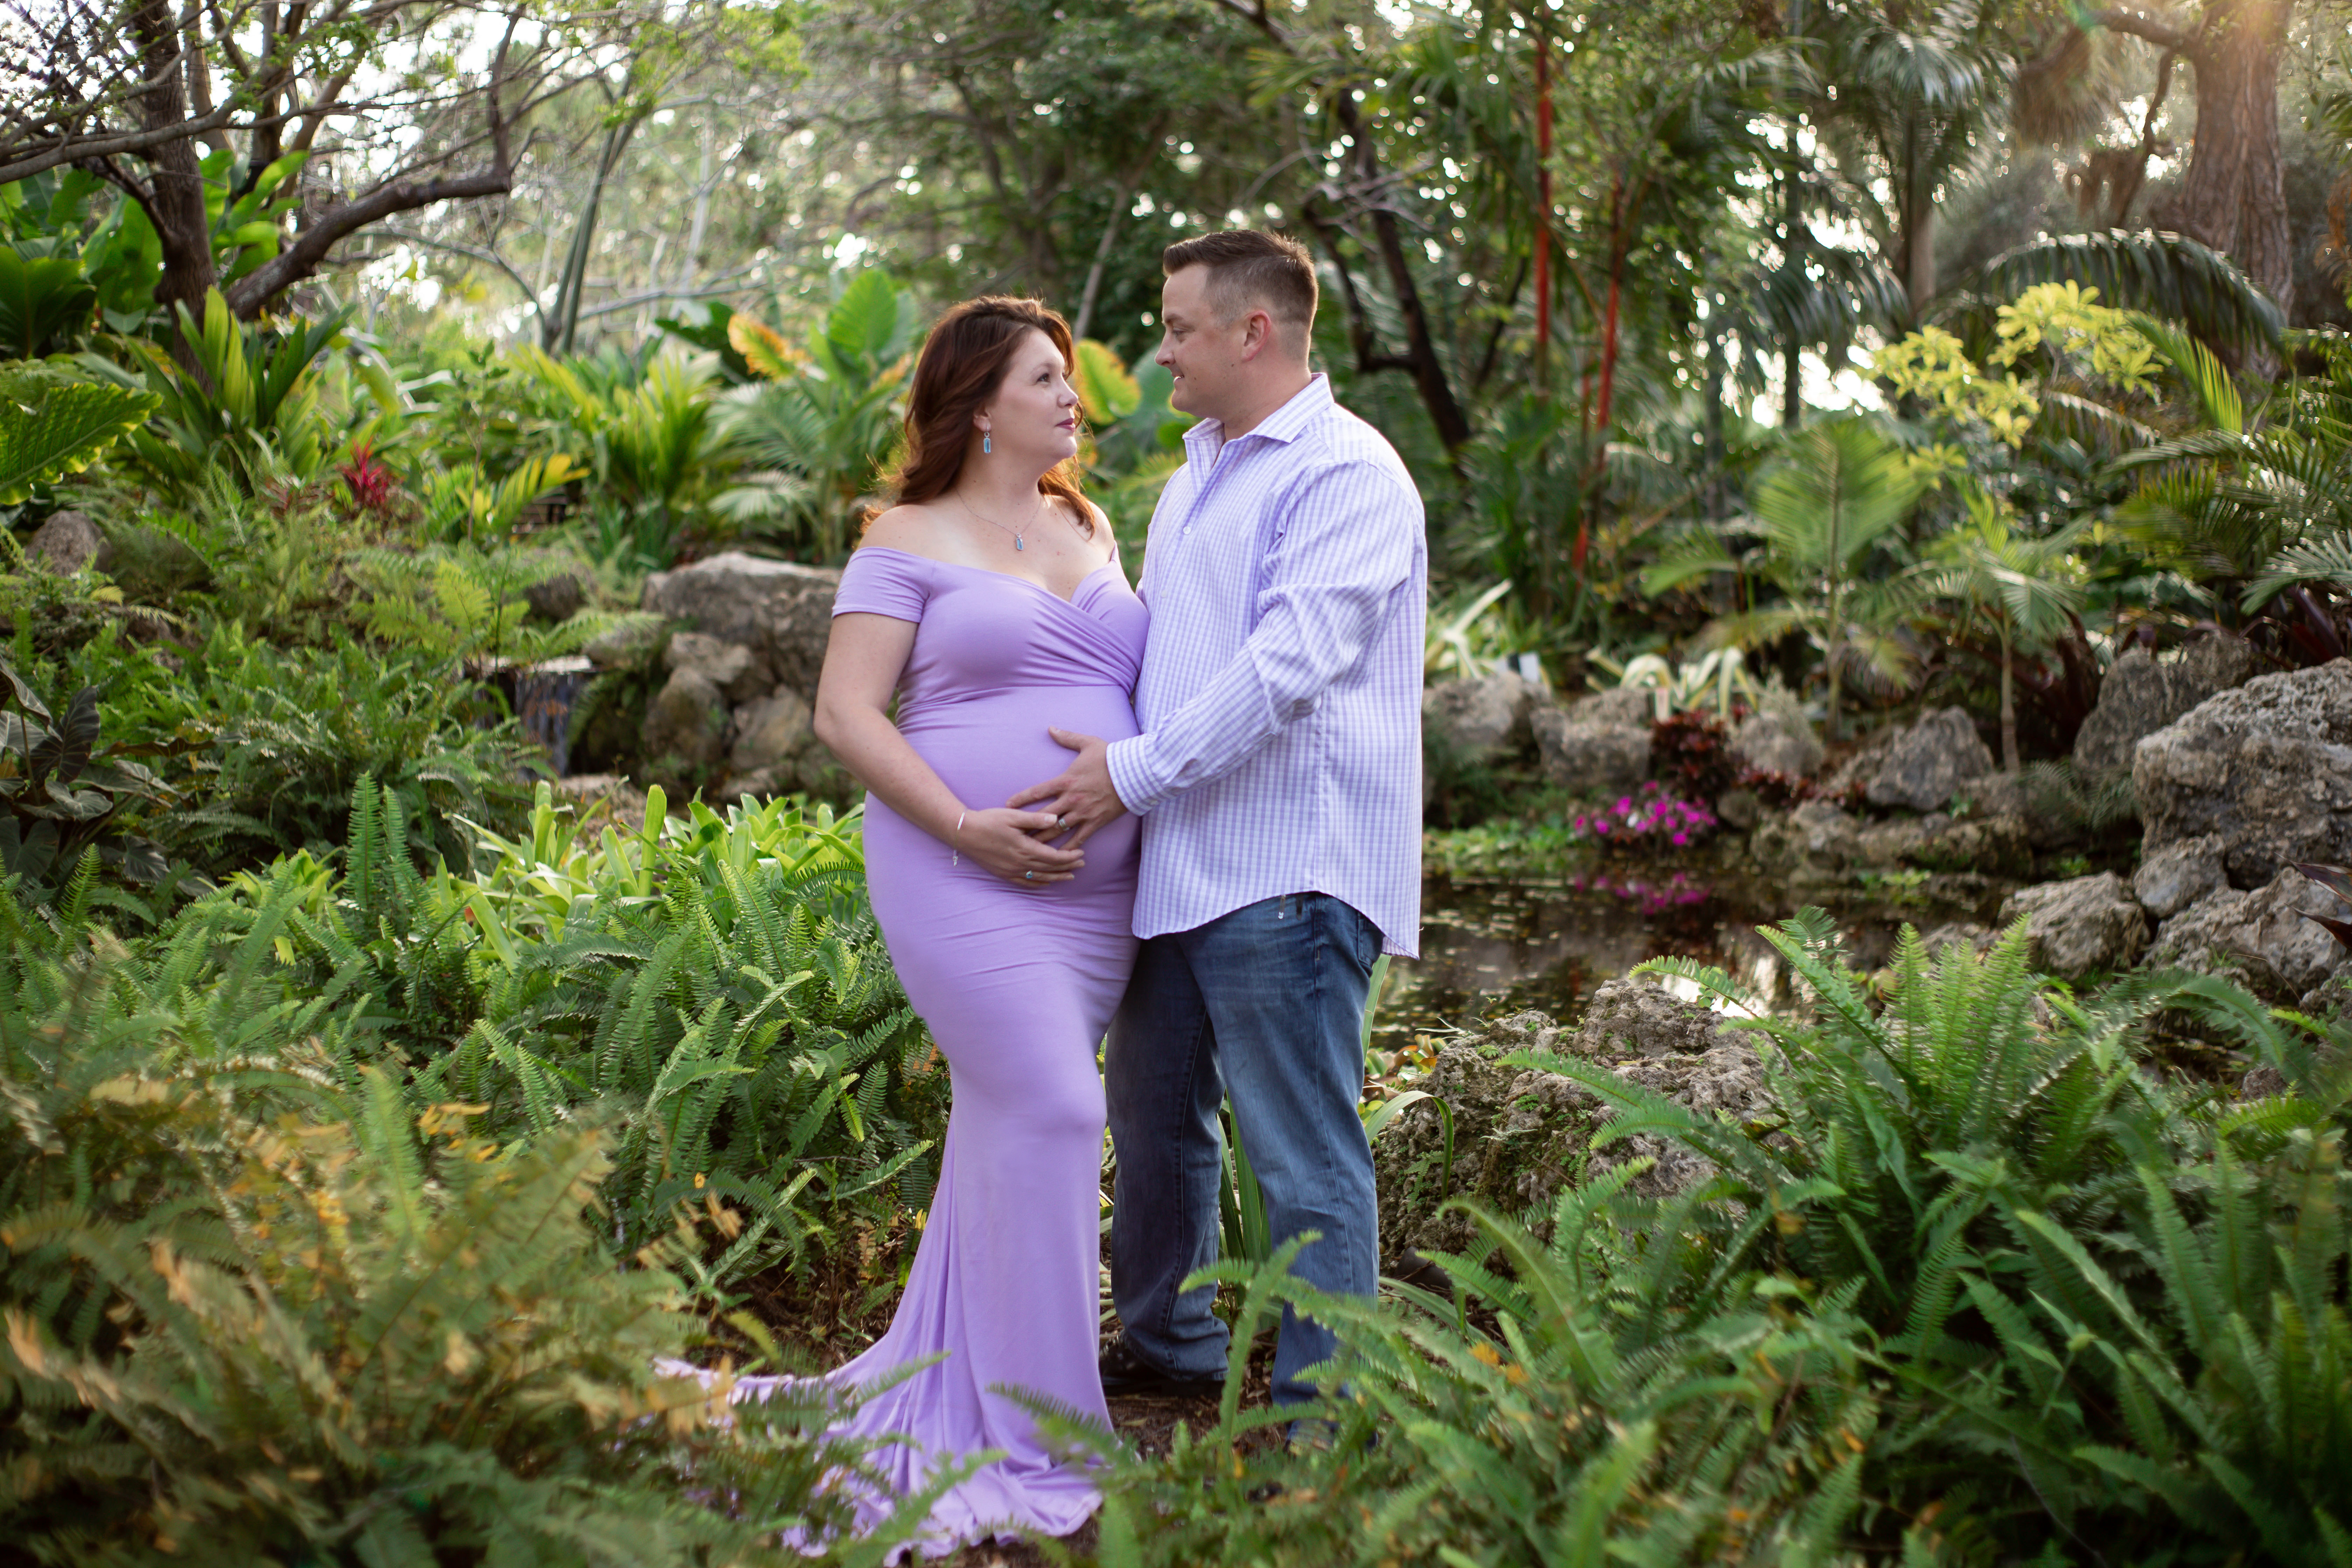 wing-family-maternity-coastal-click-photography-6315